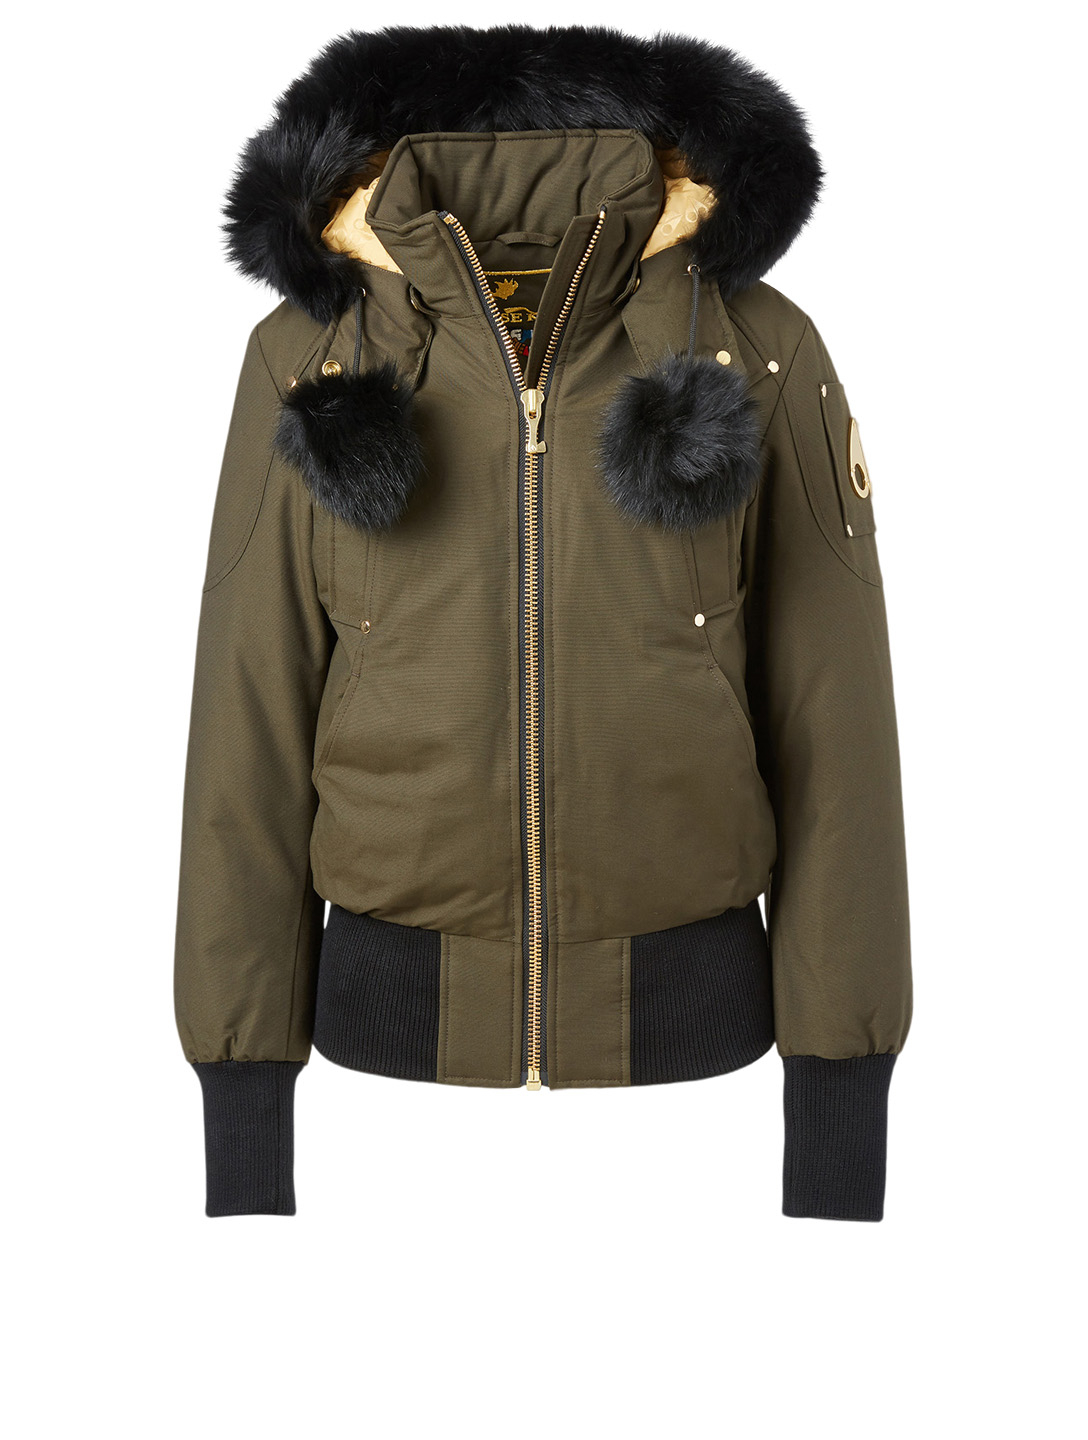 MOOSE KNUCKLES Gold Collection Sainte Flavie Bomber Jacket With Fur Hood Women's Green